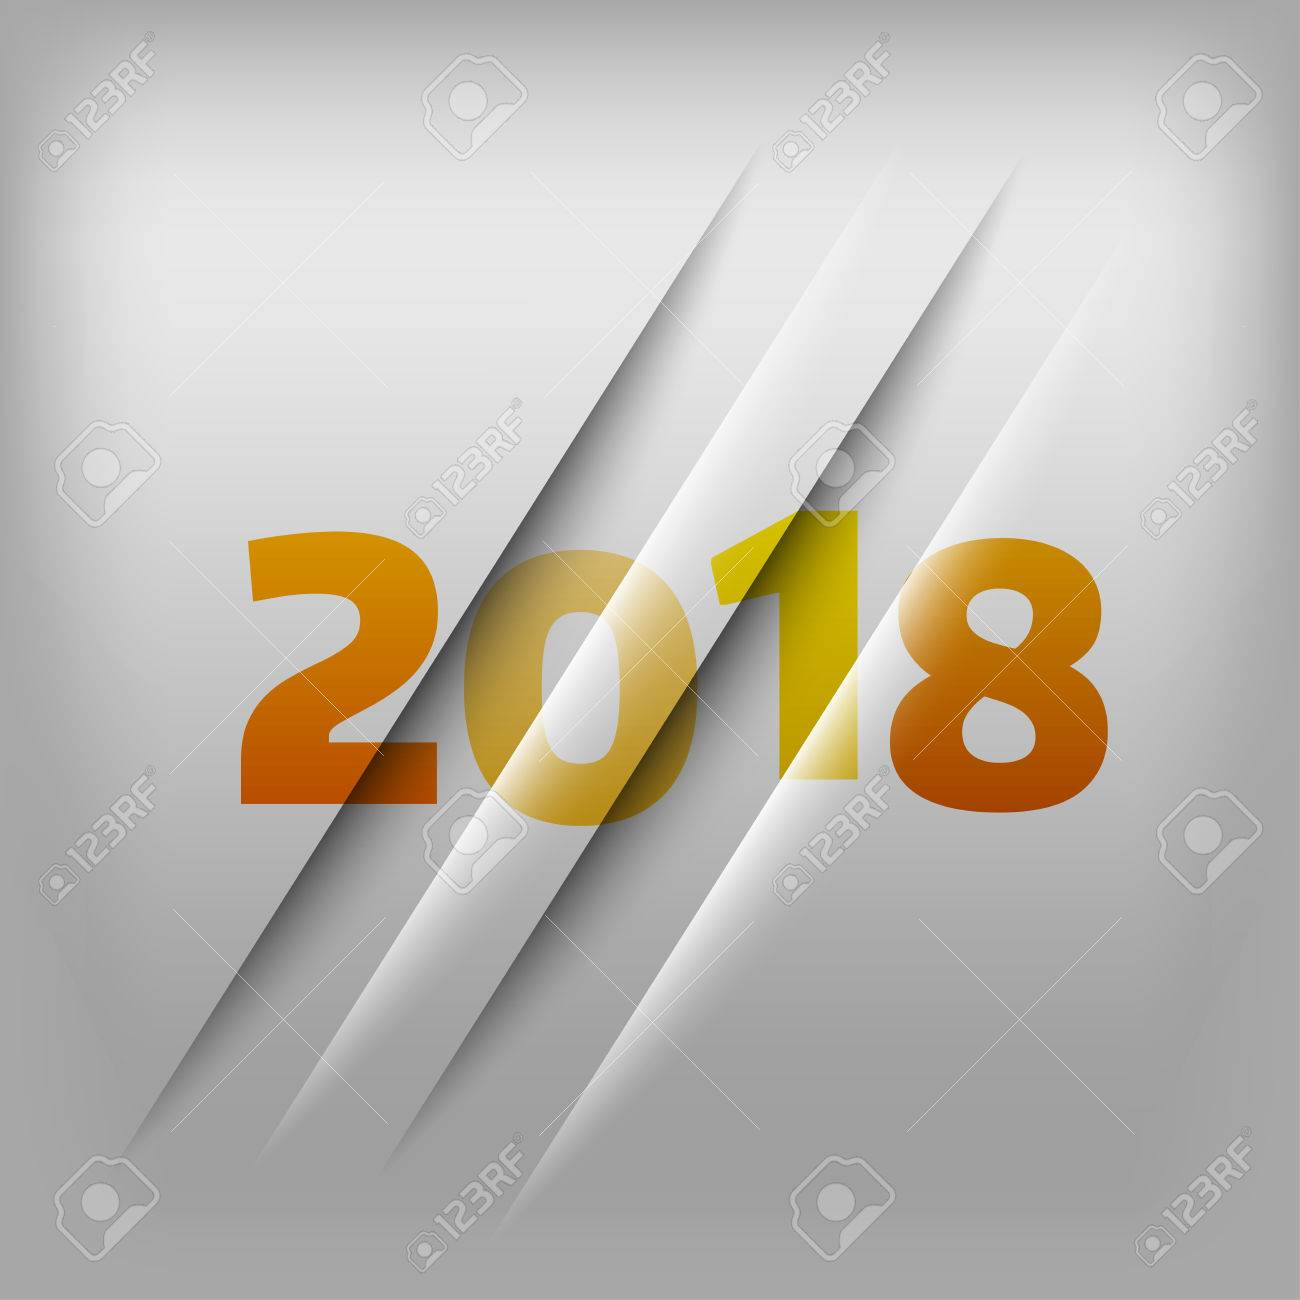 Simple gray background with orange numbers 2018. New Year Design. - 46377406